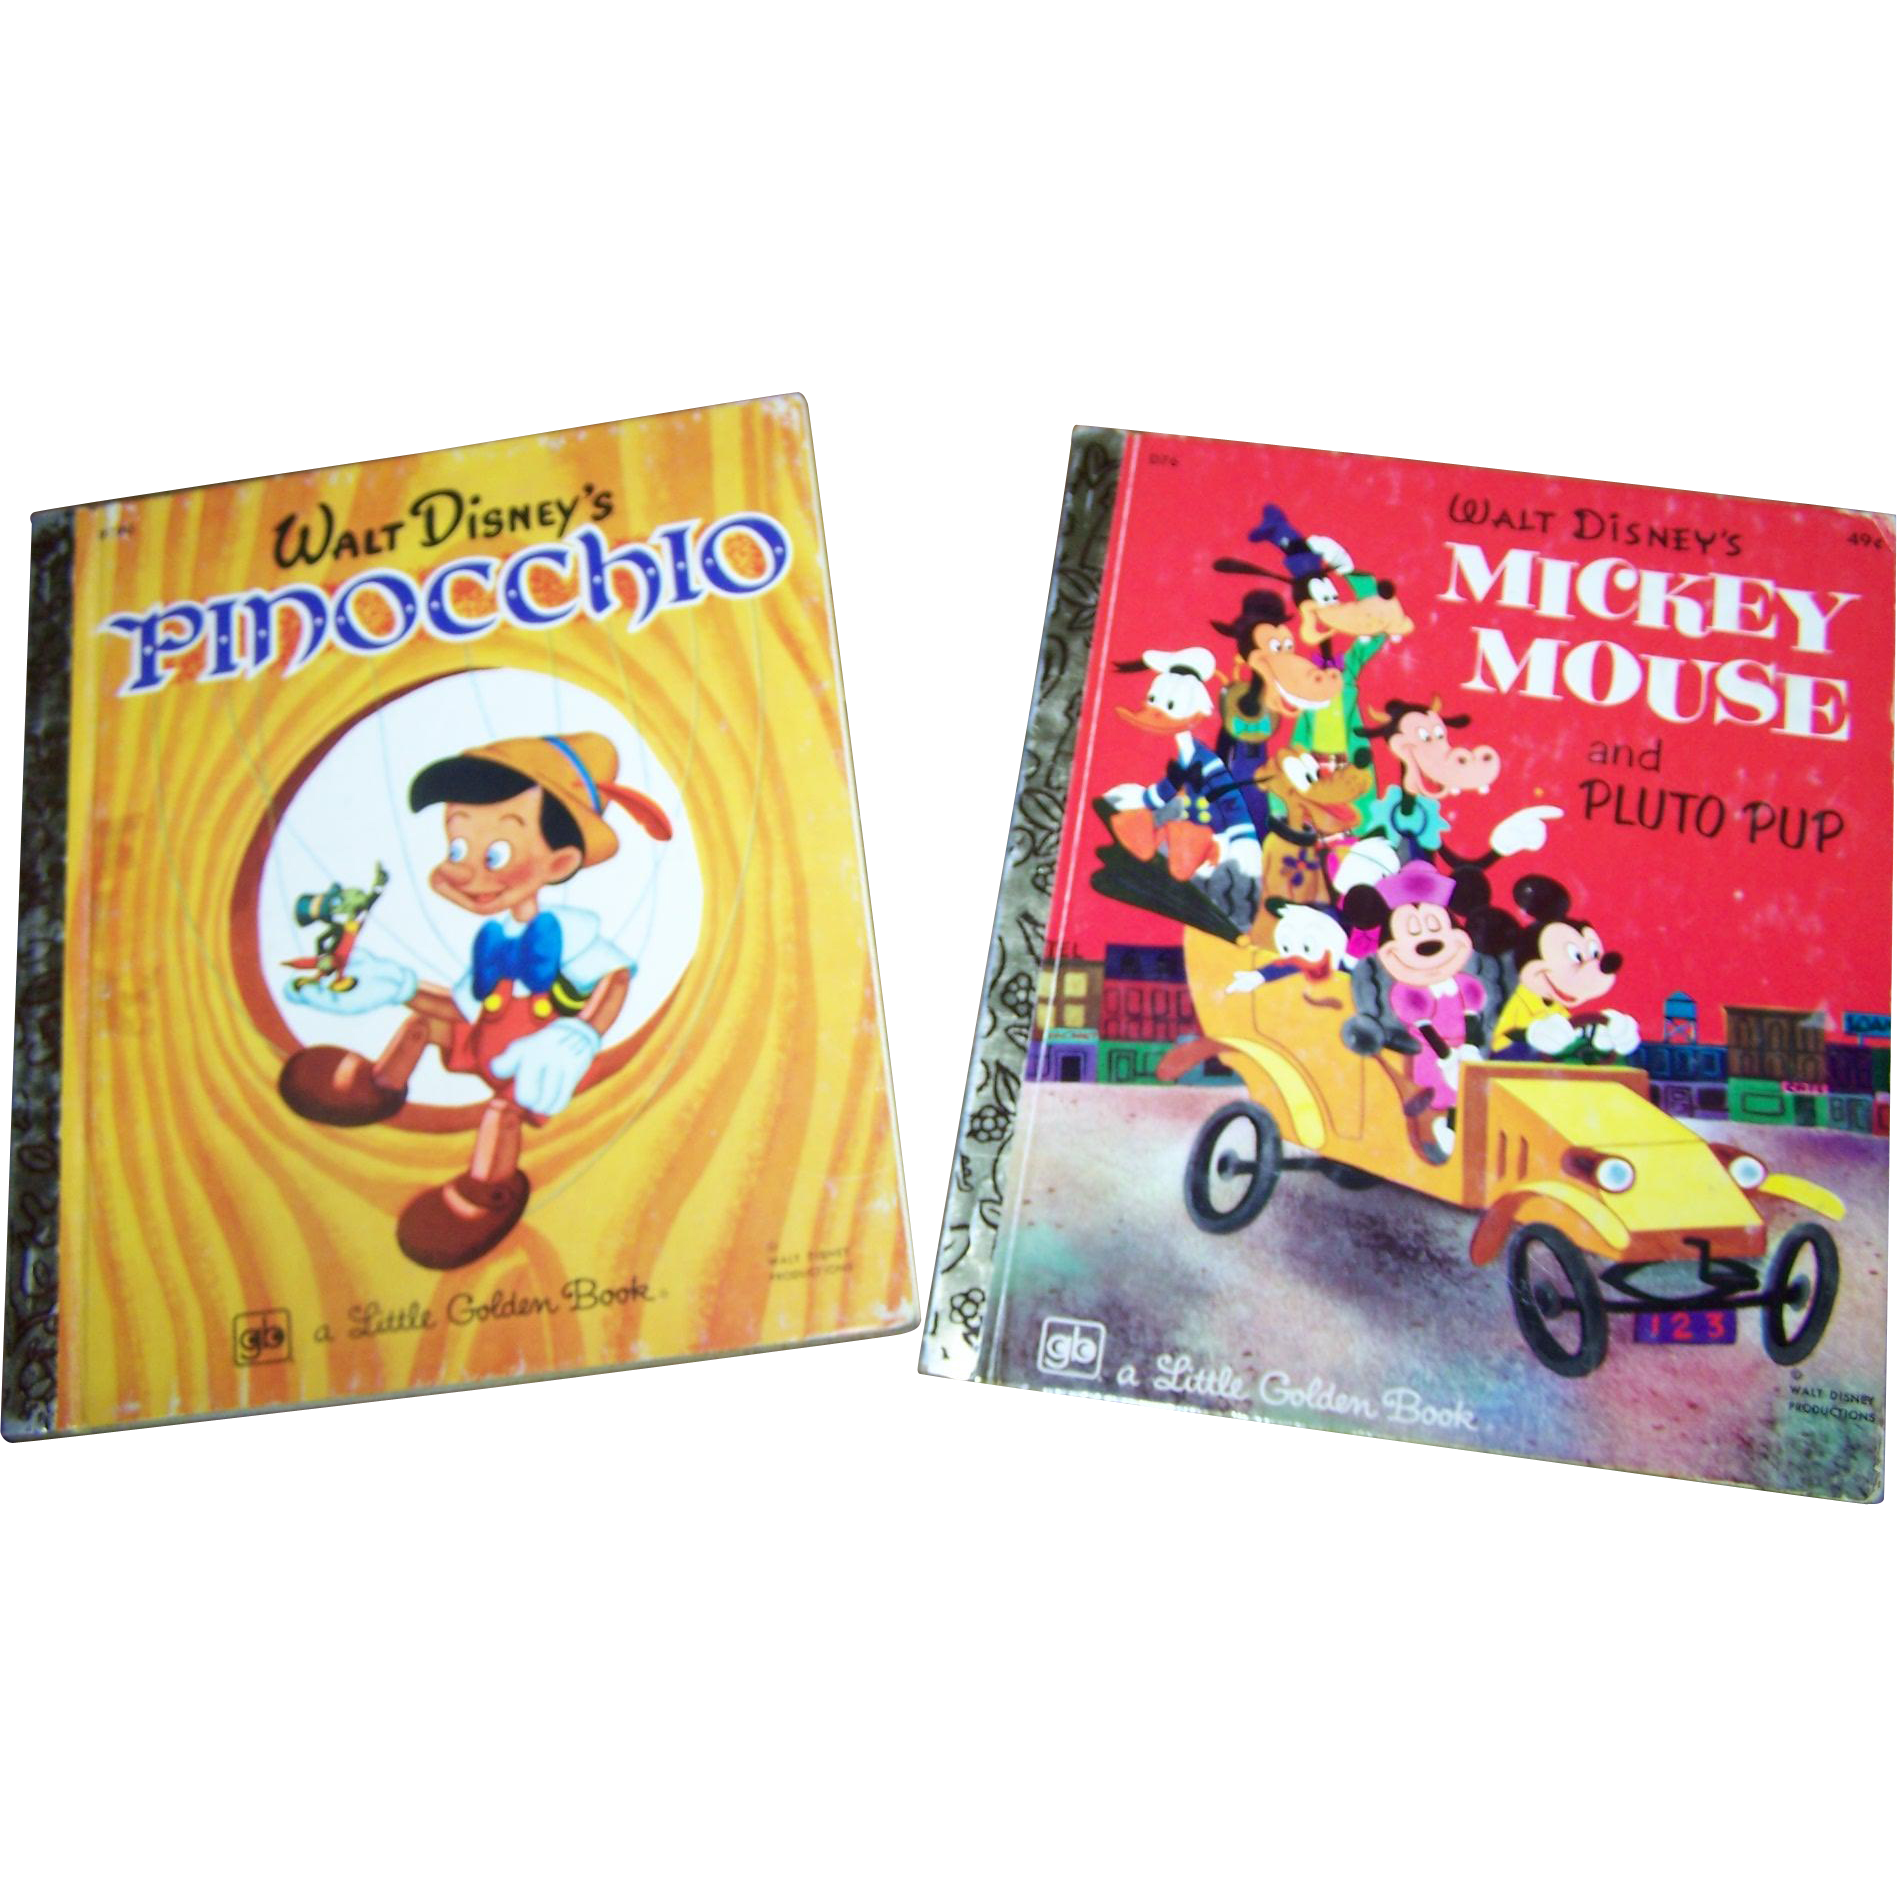 2 Vintage Children's Books Walt Disney's Mickey Mouse and Pluto Pup /   Pinocchio A Little Golden Book